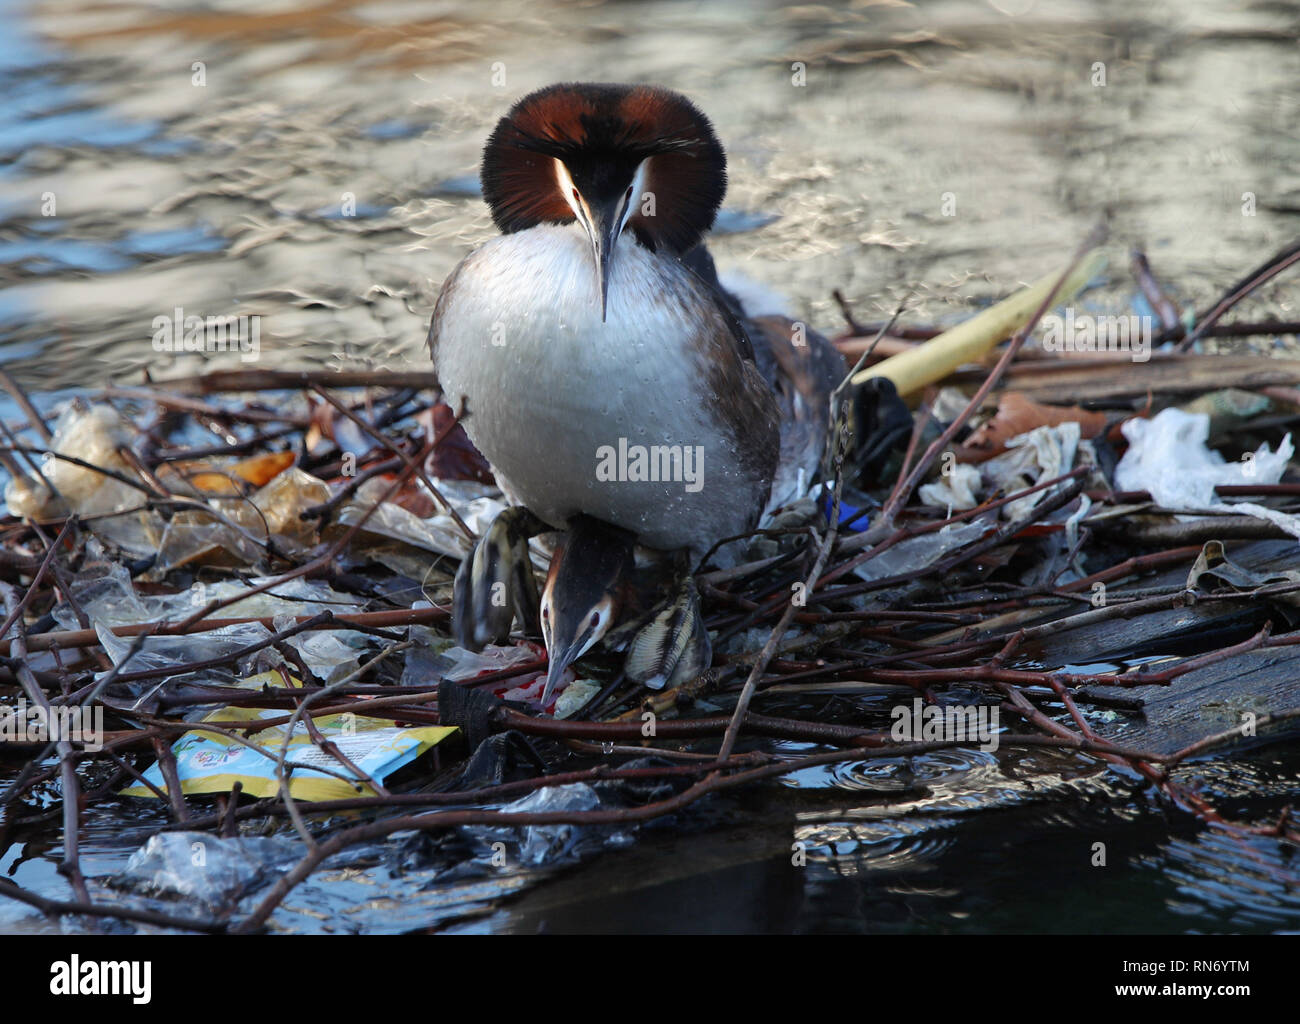 A pair of great crested grebes mating on a nest partially built from discarded litter, on the South Quay of the Isle of Dogs, east London. - Stock Image